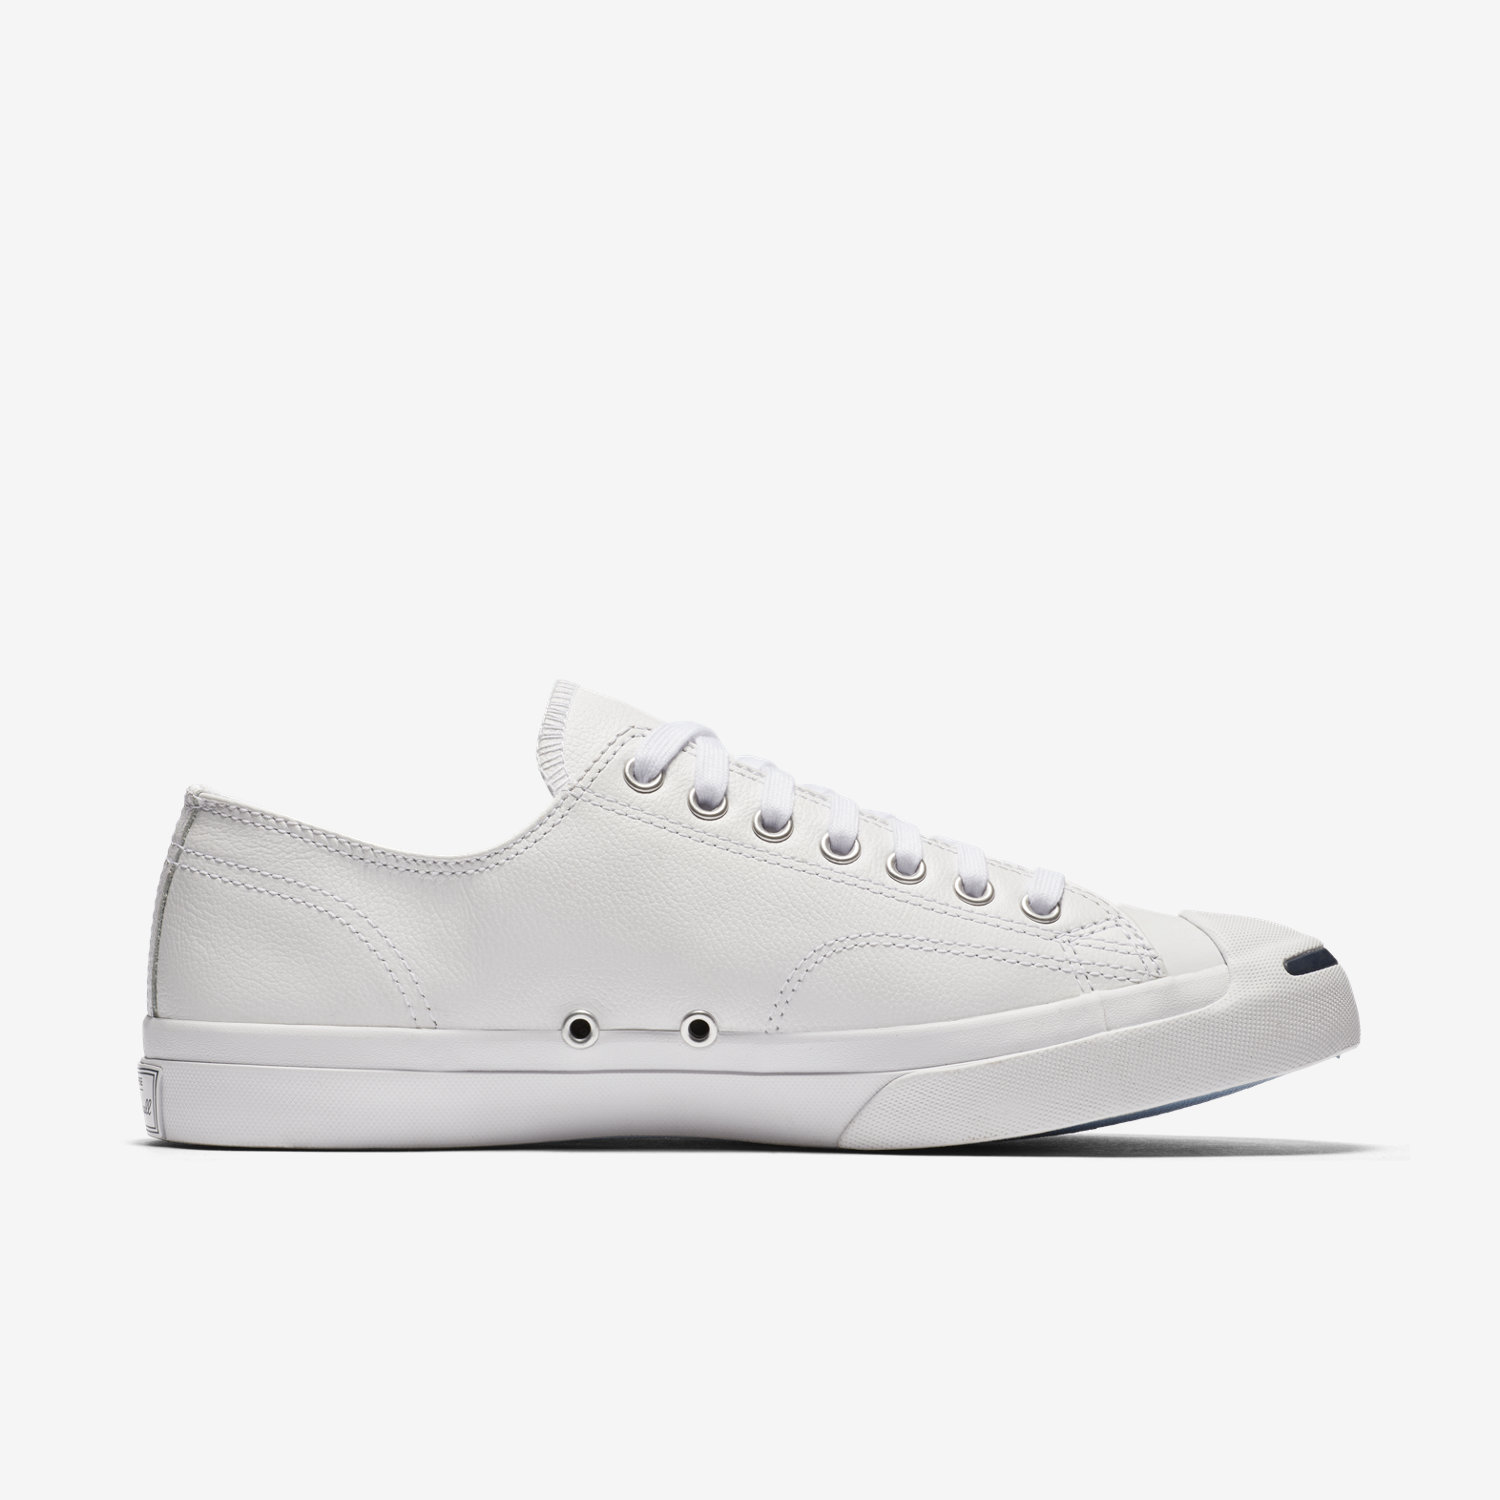 2960fa59b1dd low cost converse jack purcell classic low top unisex shoe 043e9 4bac6